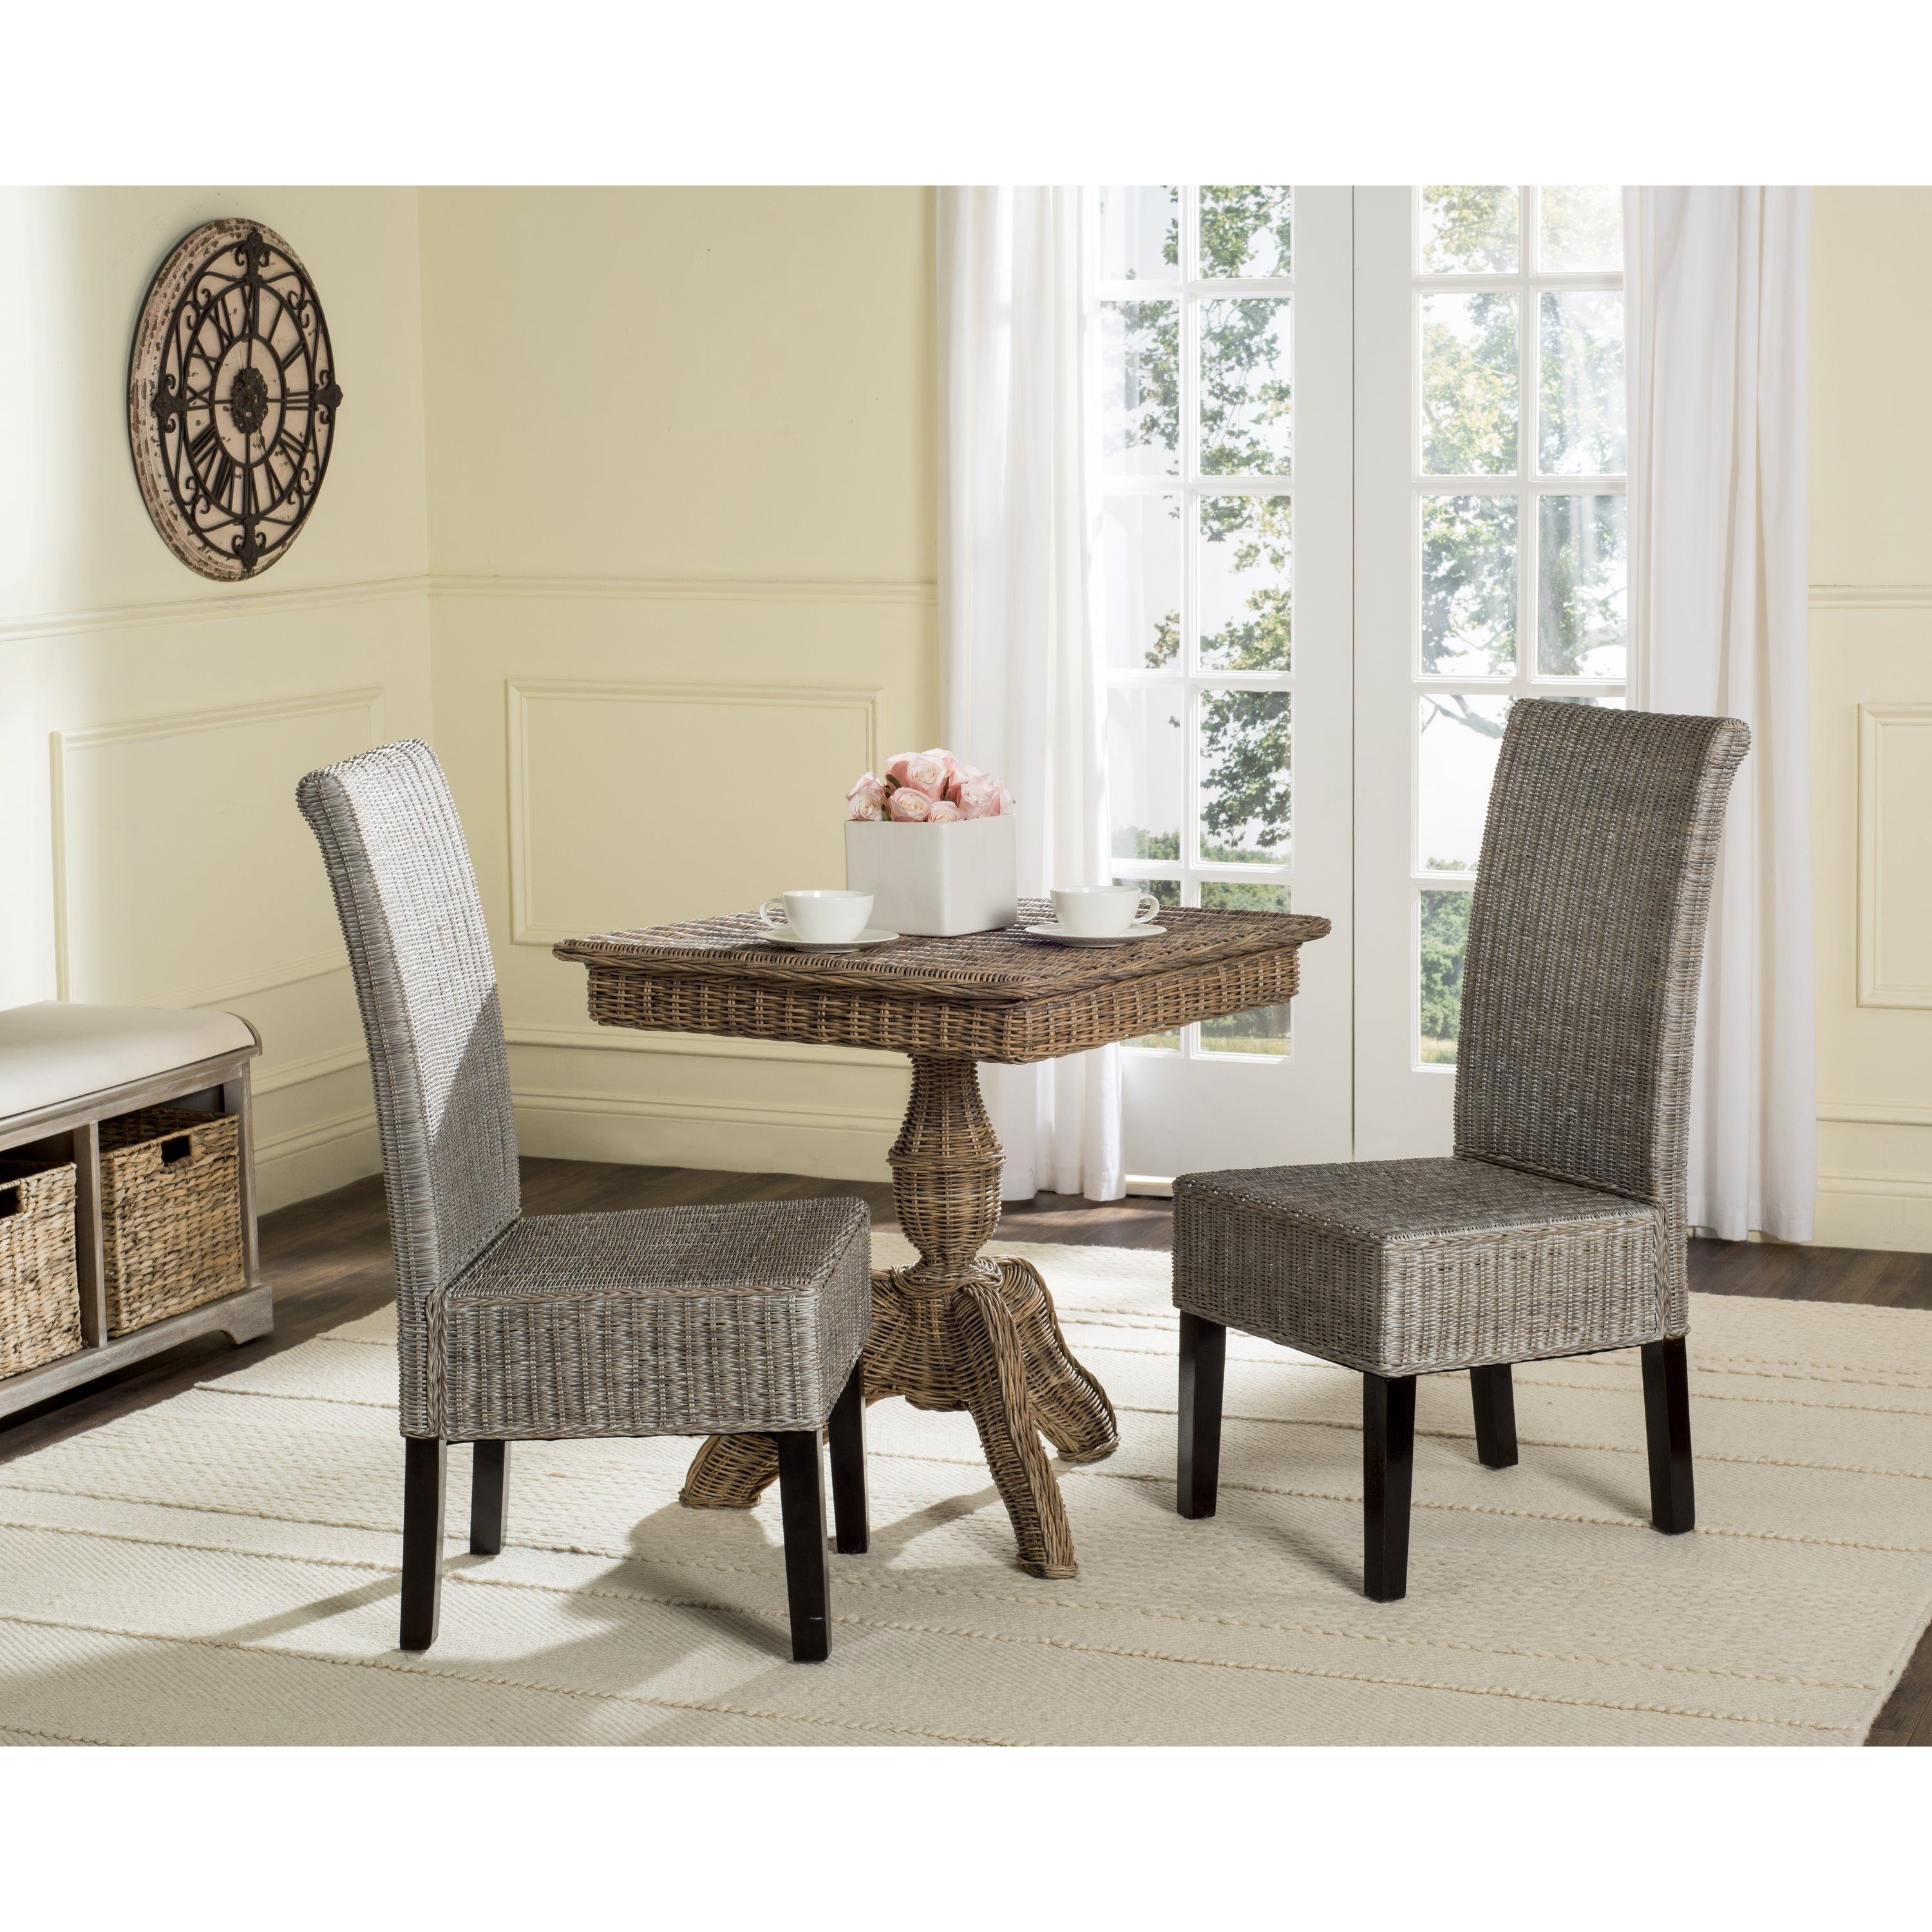 Safavieh rural woven dining arjun antique grey wicker dining chairs set of 2